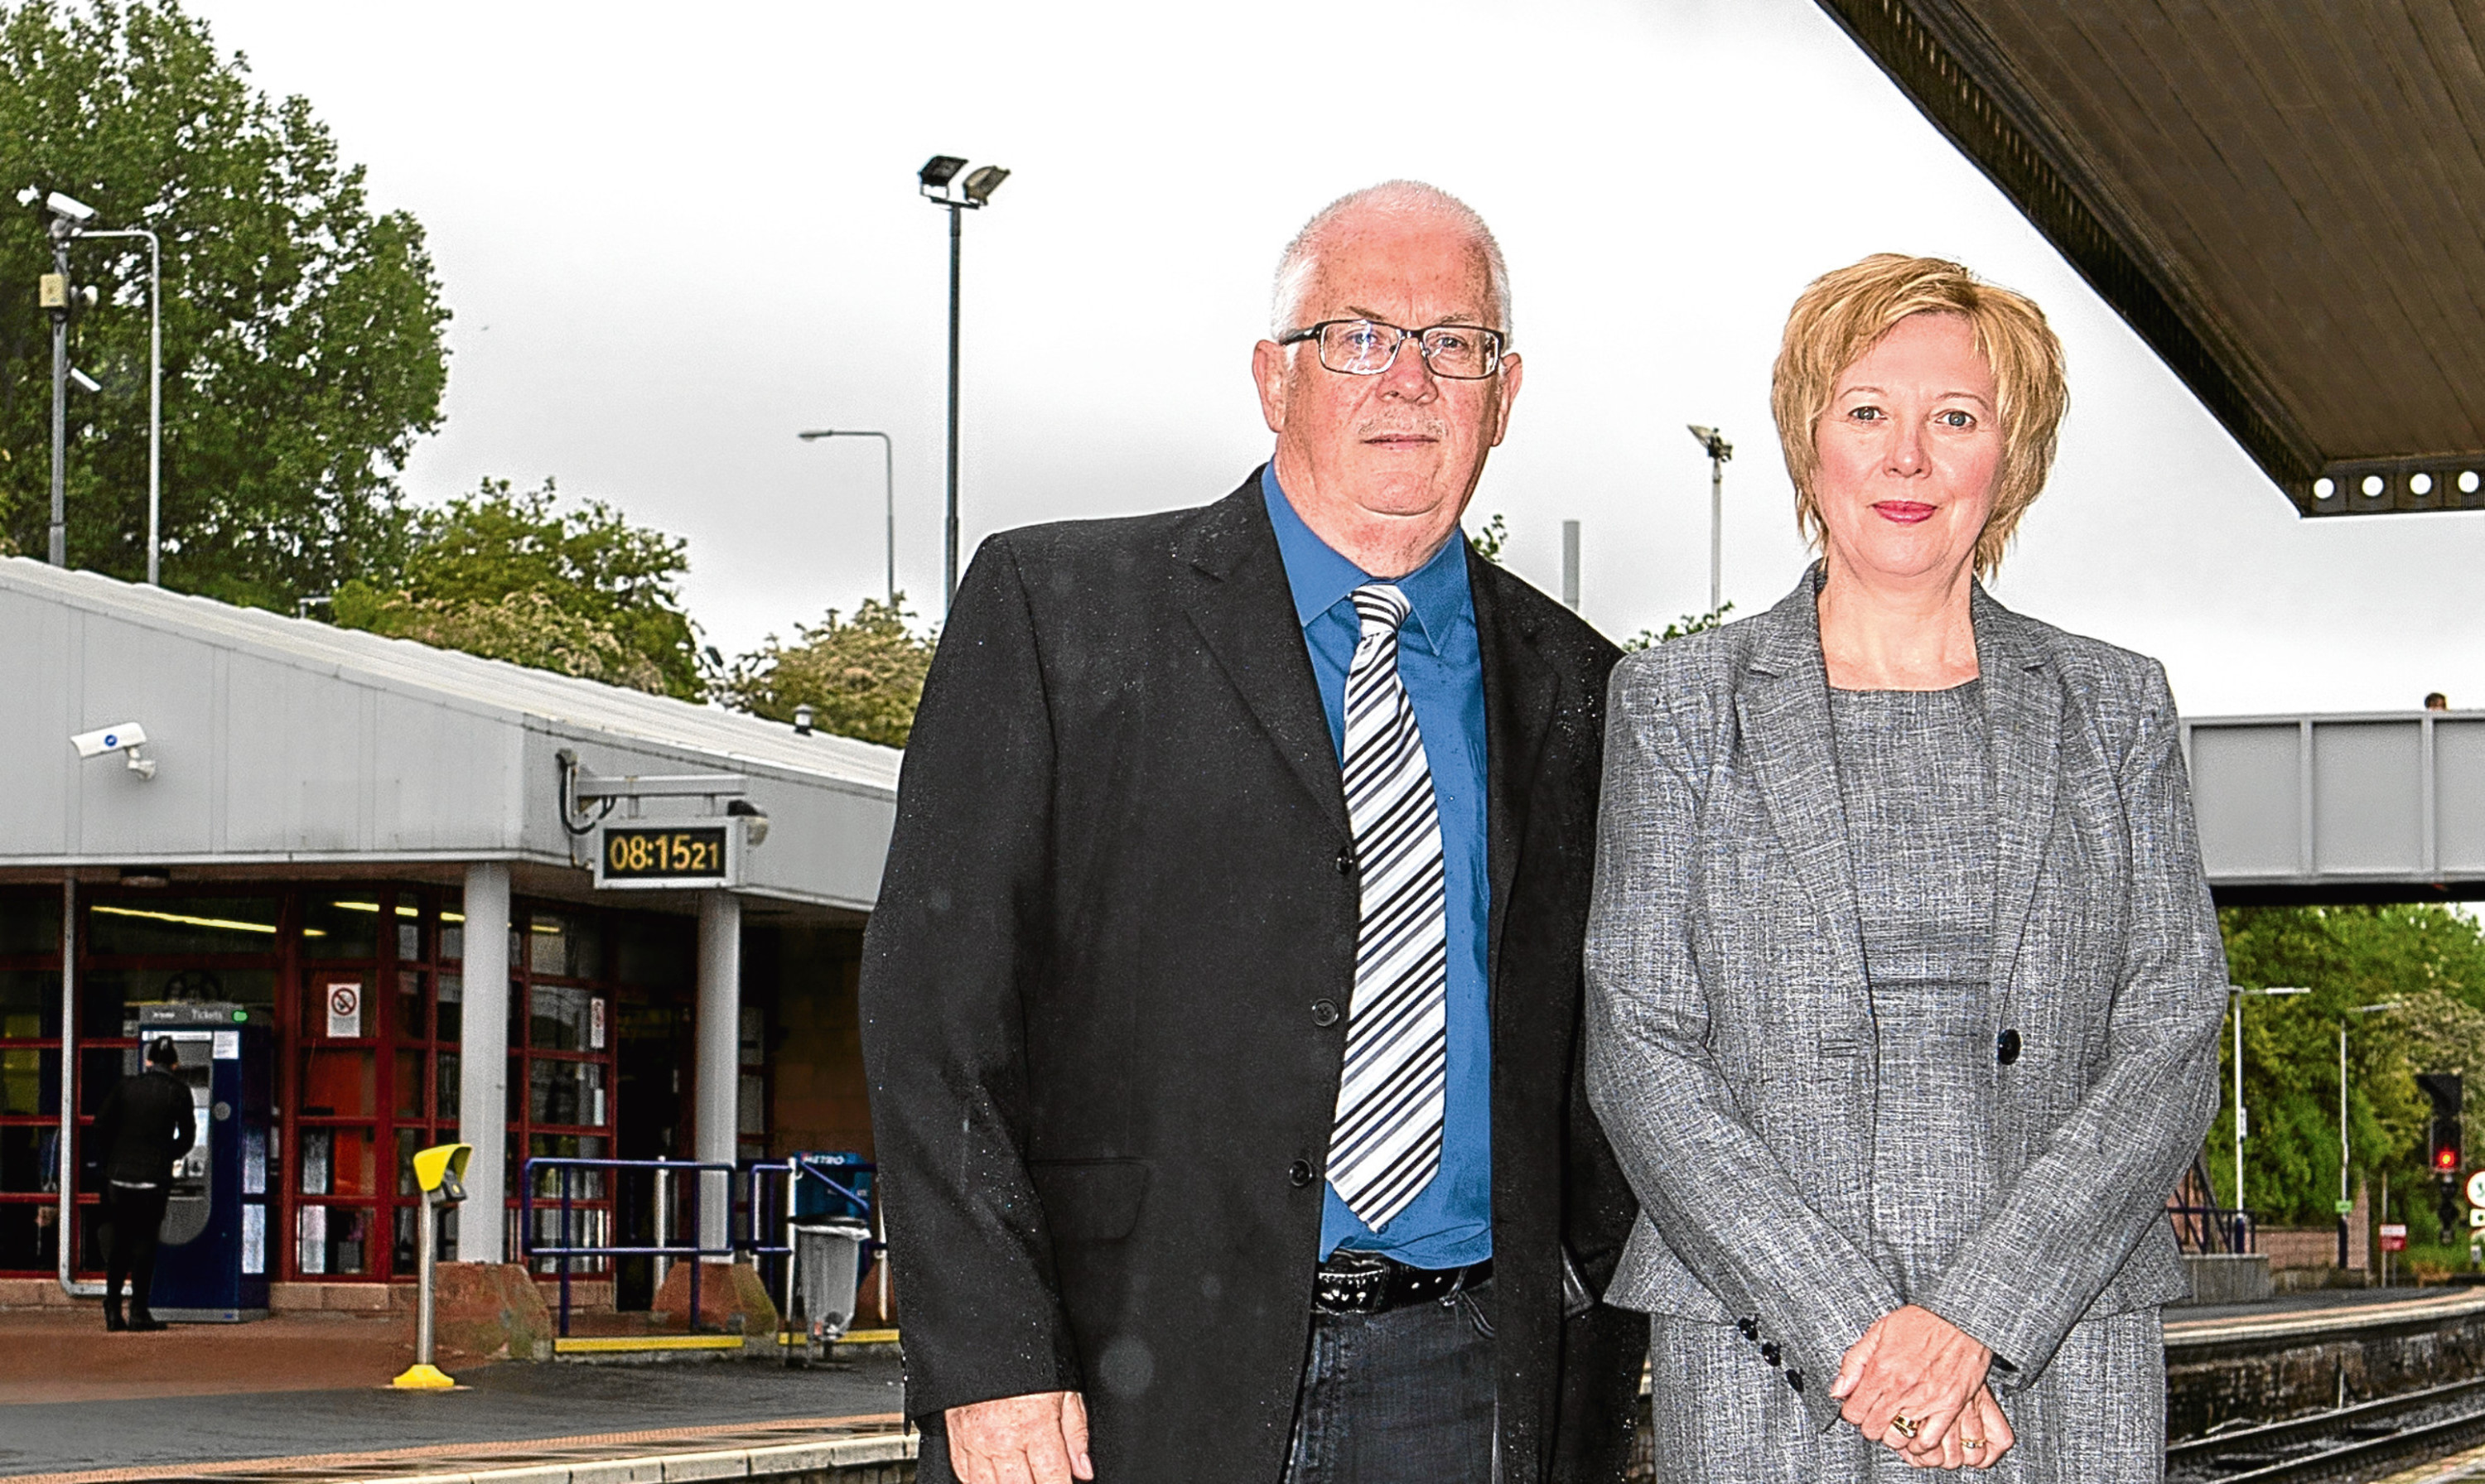 Councillor Pat Callaghan and Councillor Lesley Laird have been campaigning for fairer rail fares.